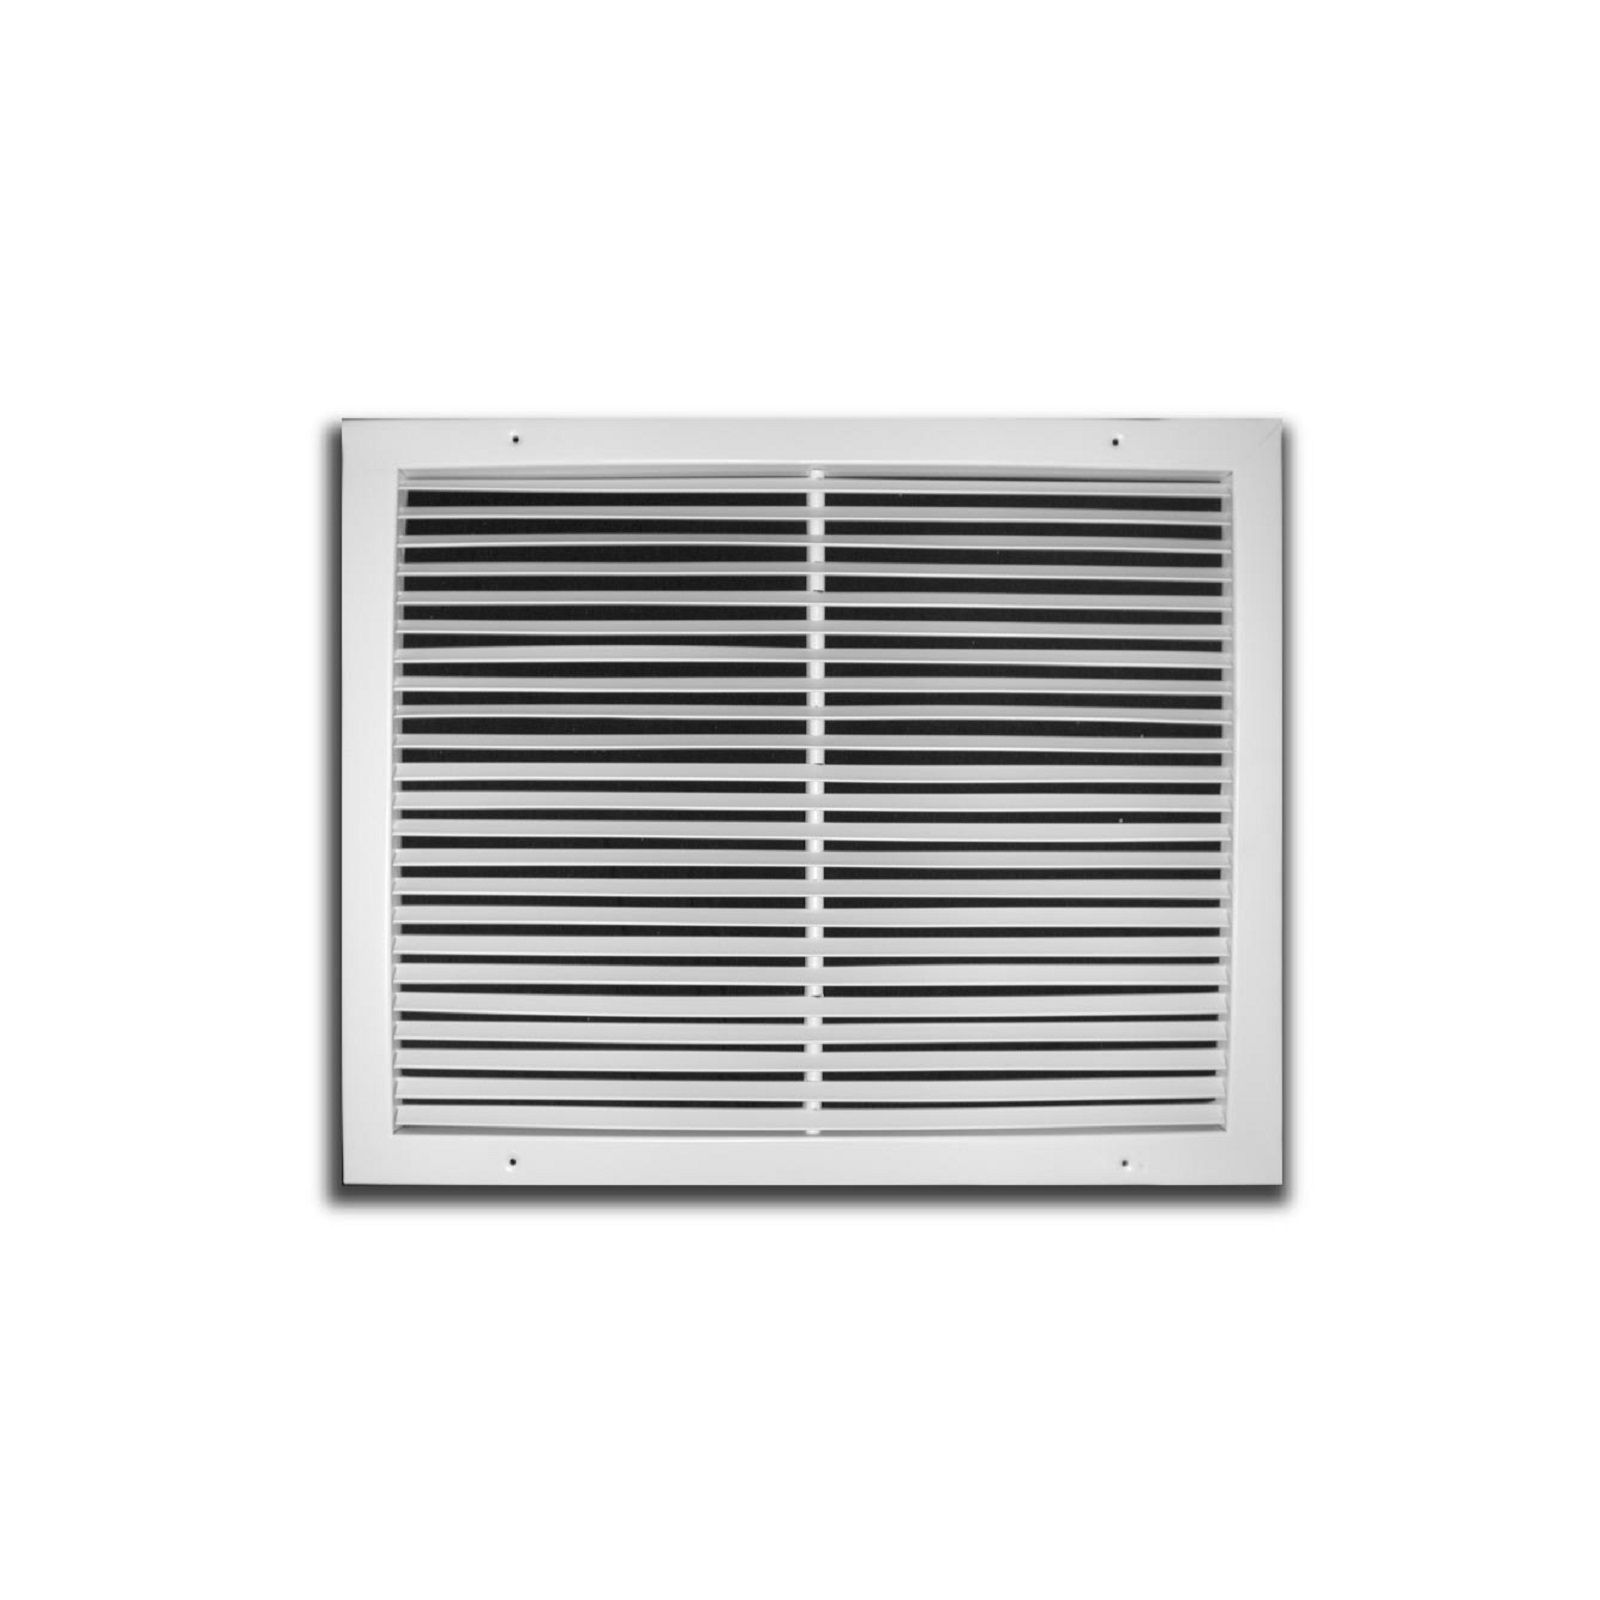 "TRUaire 270 14X04 - Steel Fixed Bar Return Air Grille, White, 14"" X 04"""